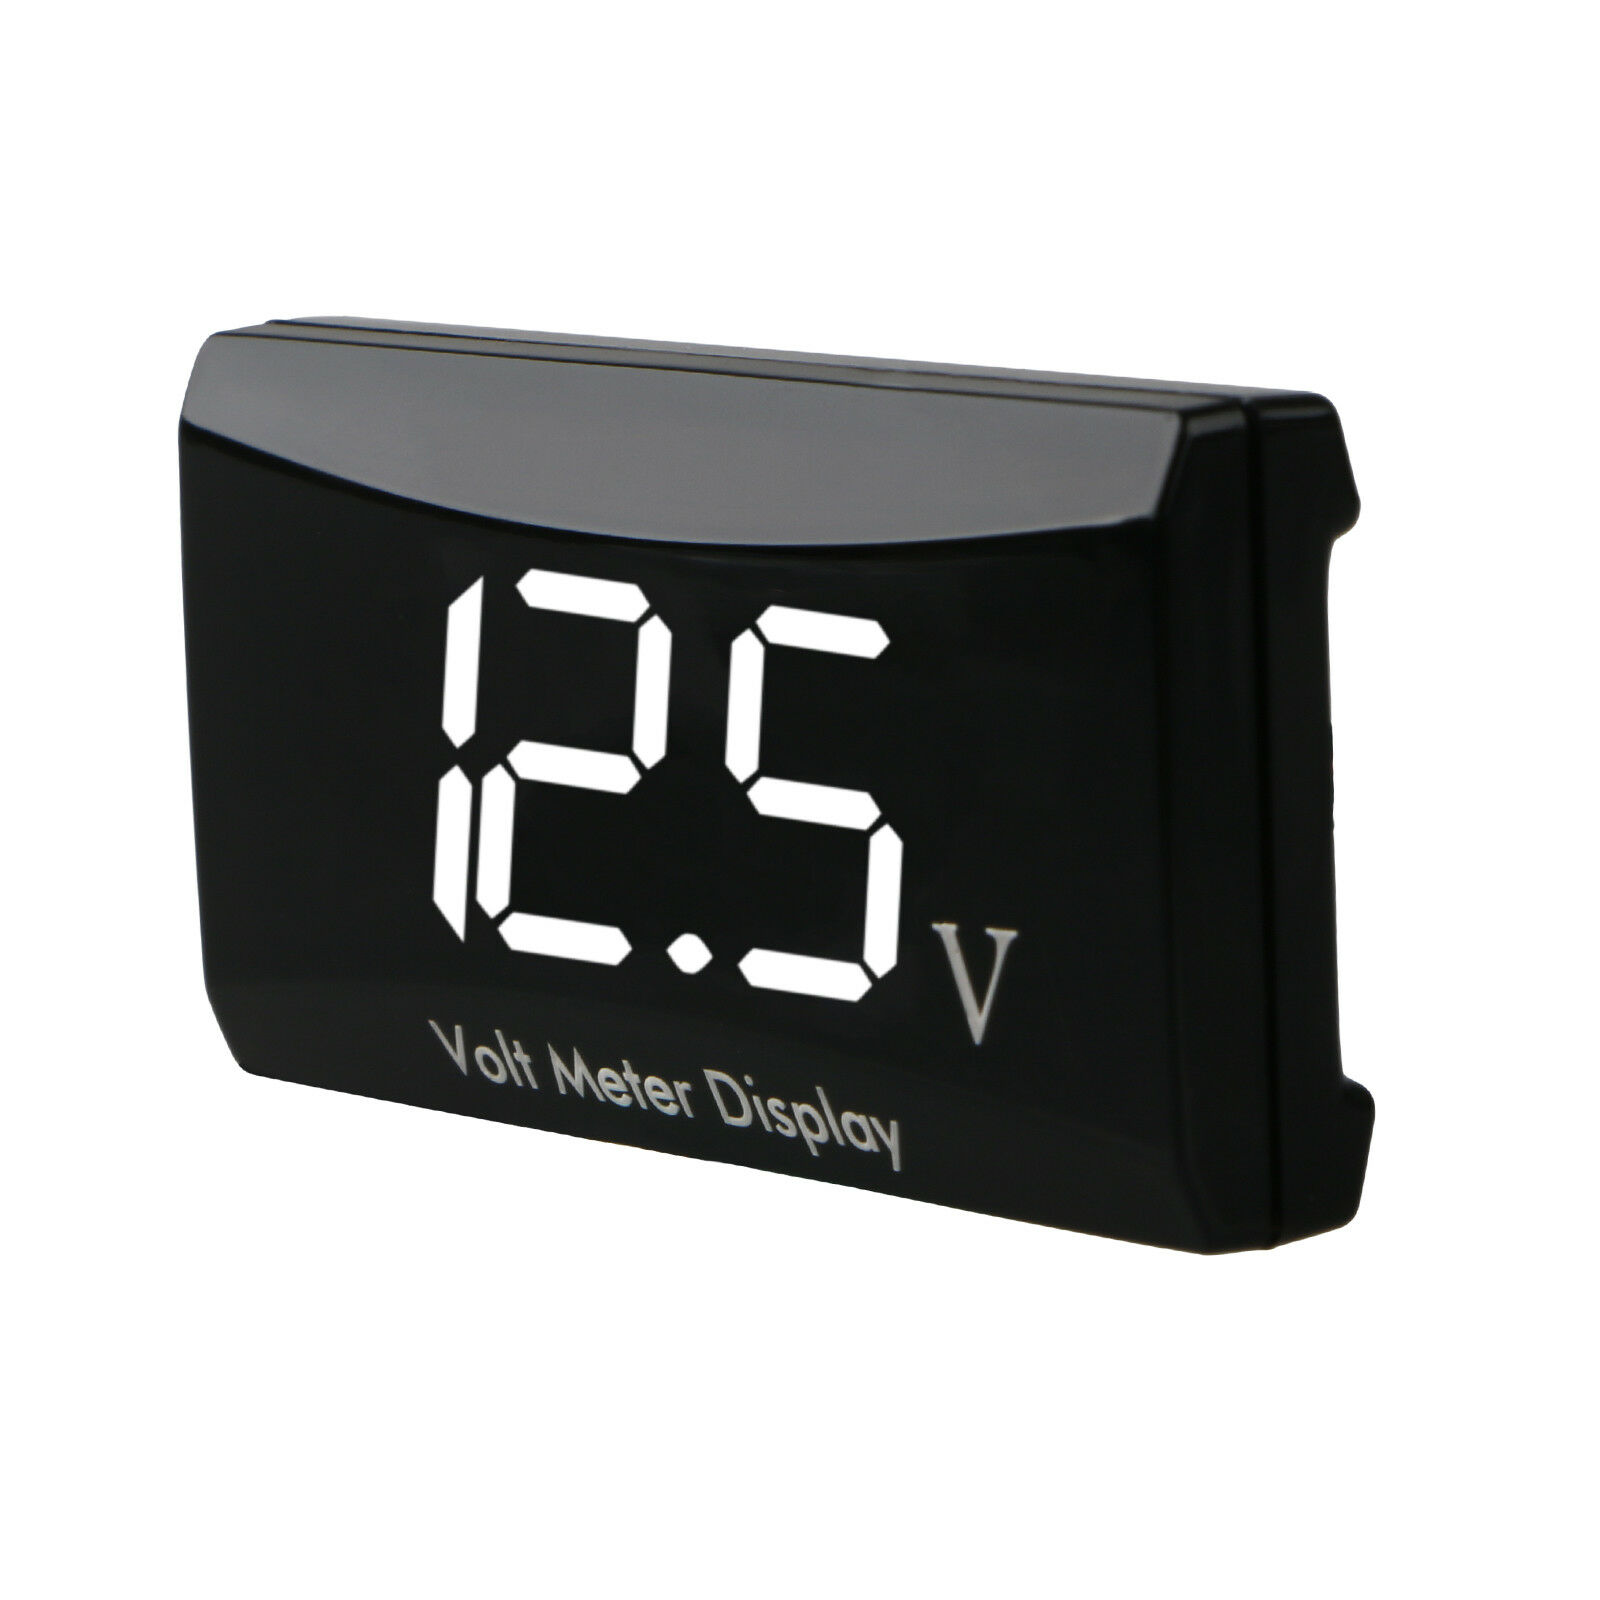 LED-Digital-Display-Voltmeter-Car-Motorcycle-Voltage-Volt-Gauge-Panel-Meter-12V thumbnail 15